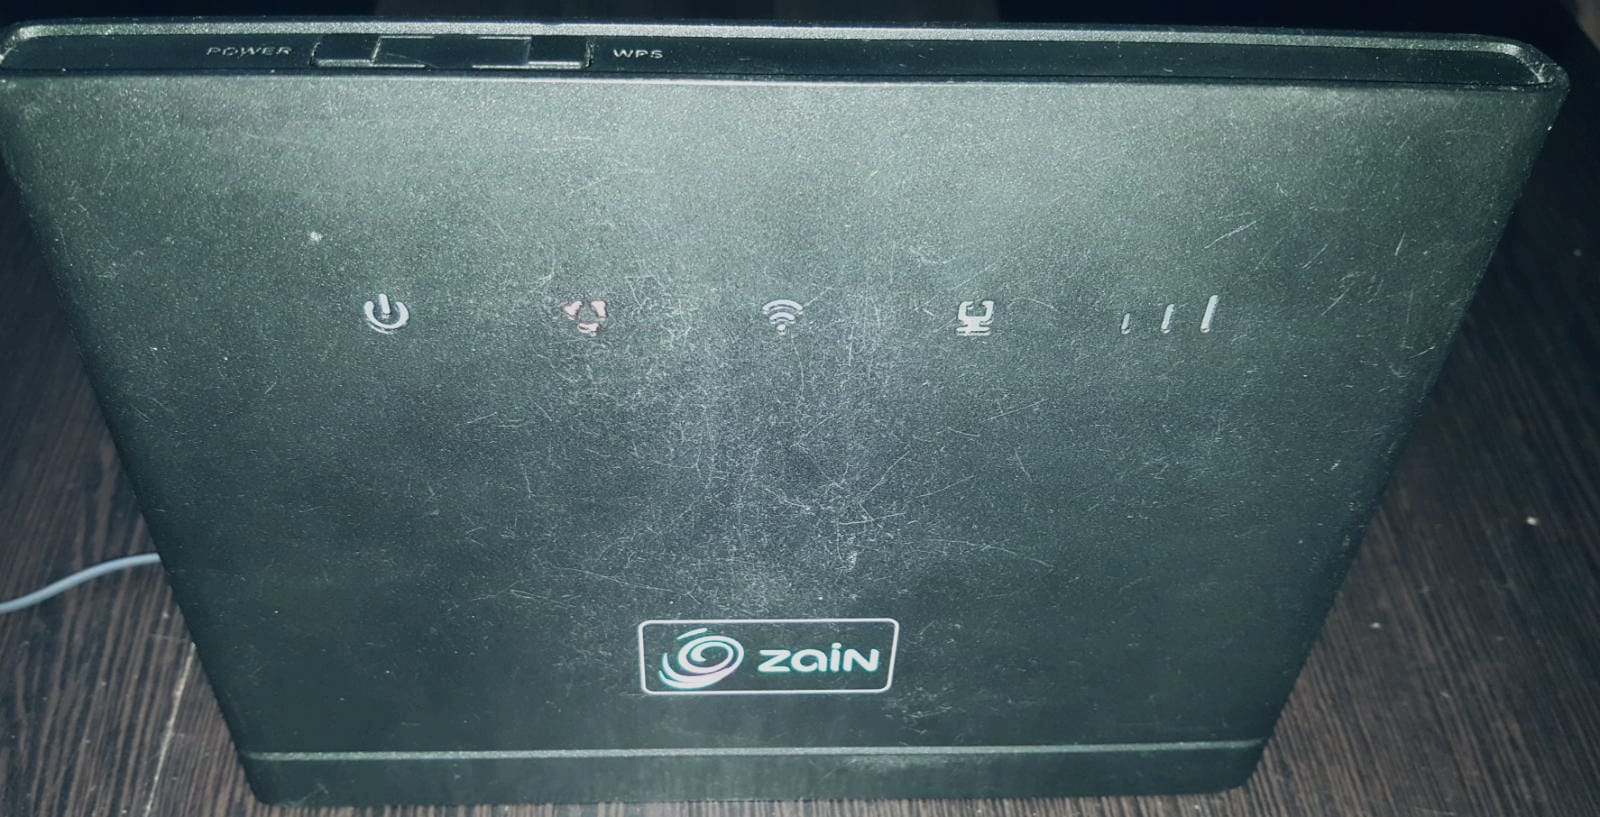 ROUTERS FOR SALE - SALMIYA